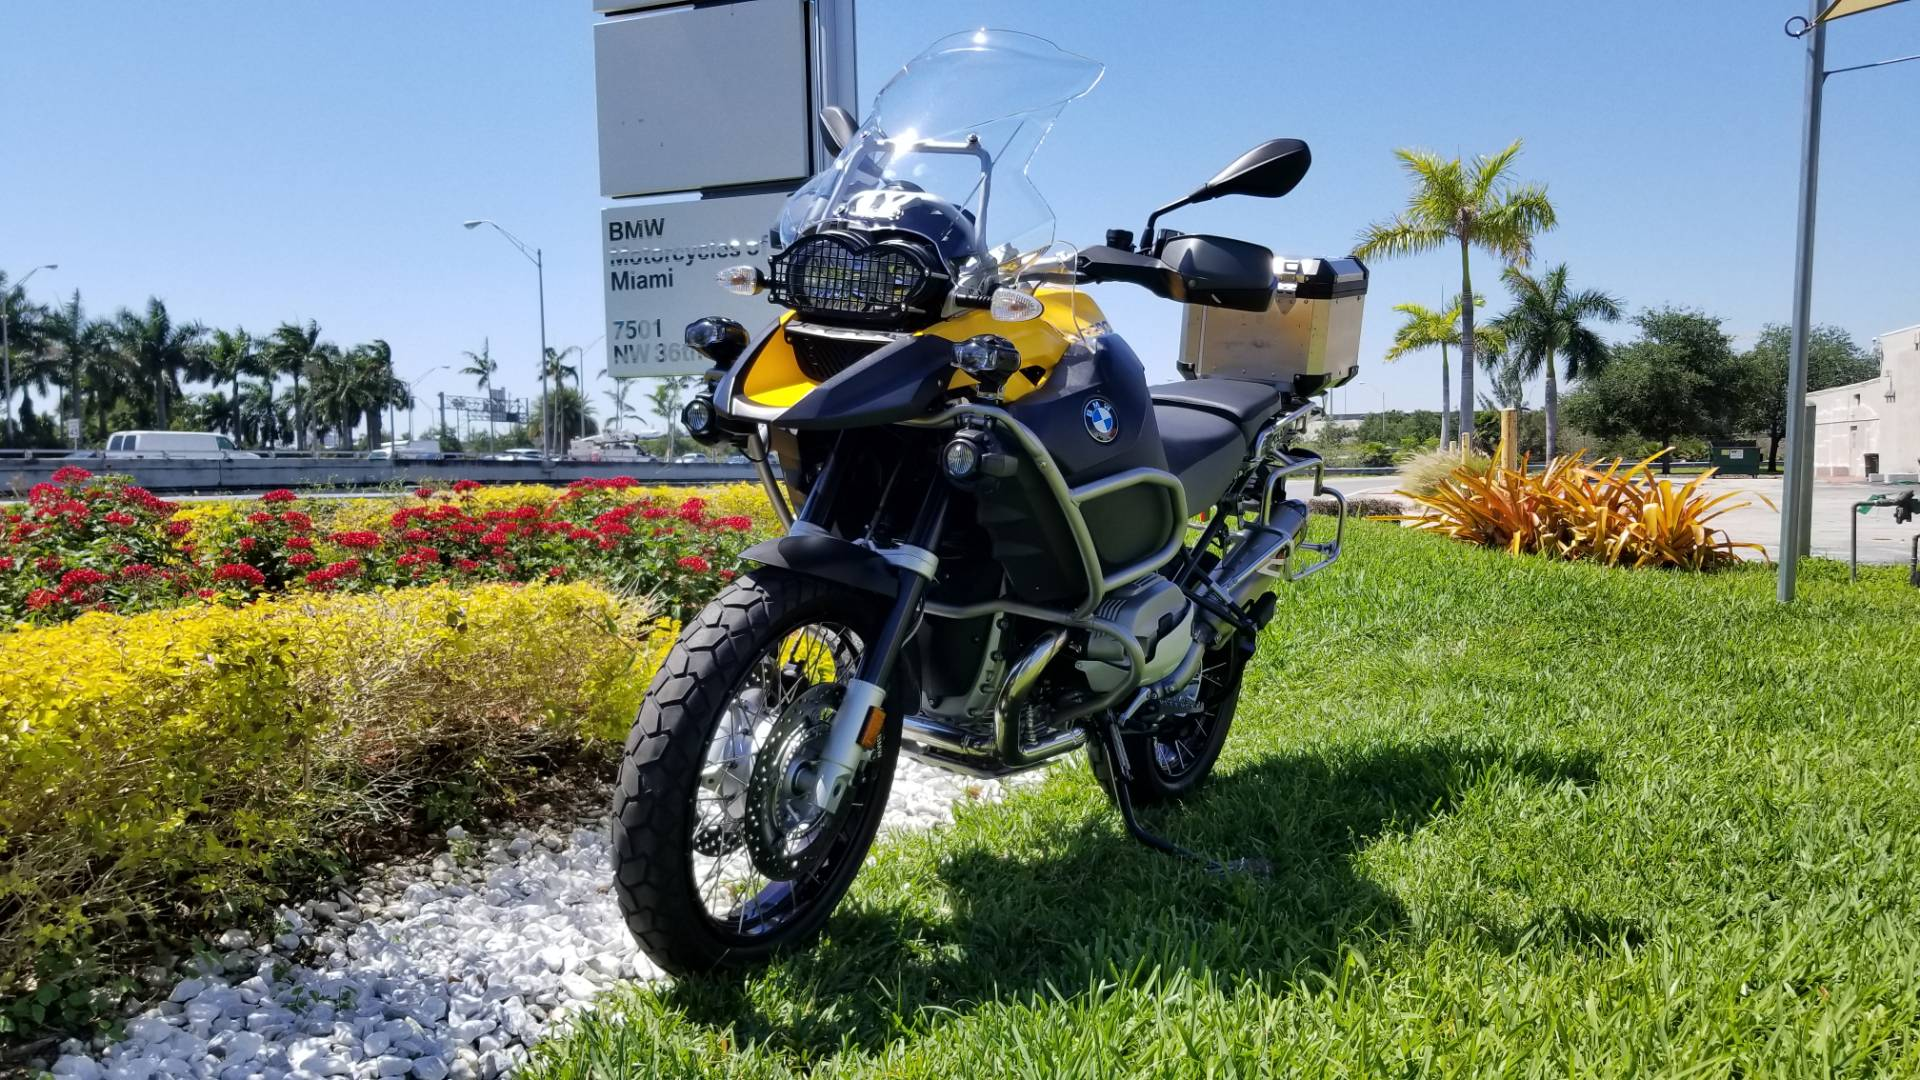 Used 2011 BMW R 1200 GSA For Sale, Pre owned BMW R 1200GSA For Sale, BMW Motorcycle R1200GSA, BMW Motorcycles of Miami, Motorcycles of Miami, Motorcycles Miami - Photo 3